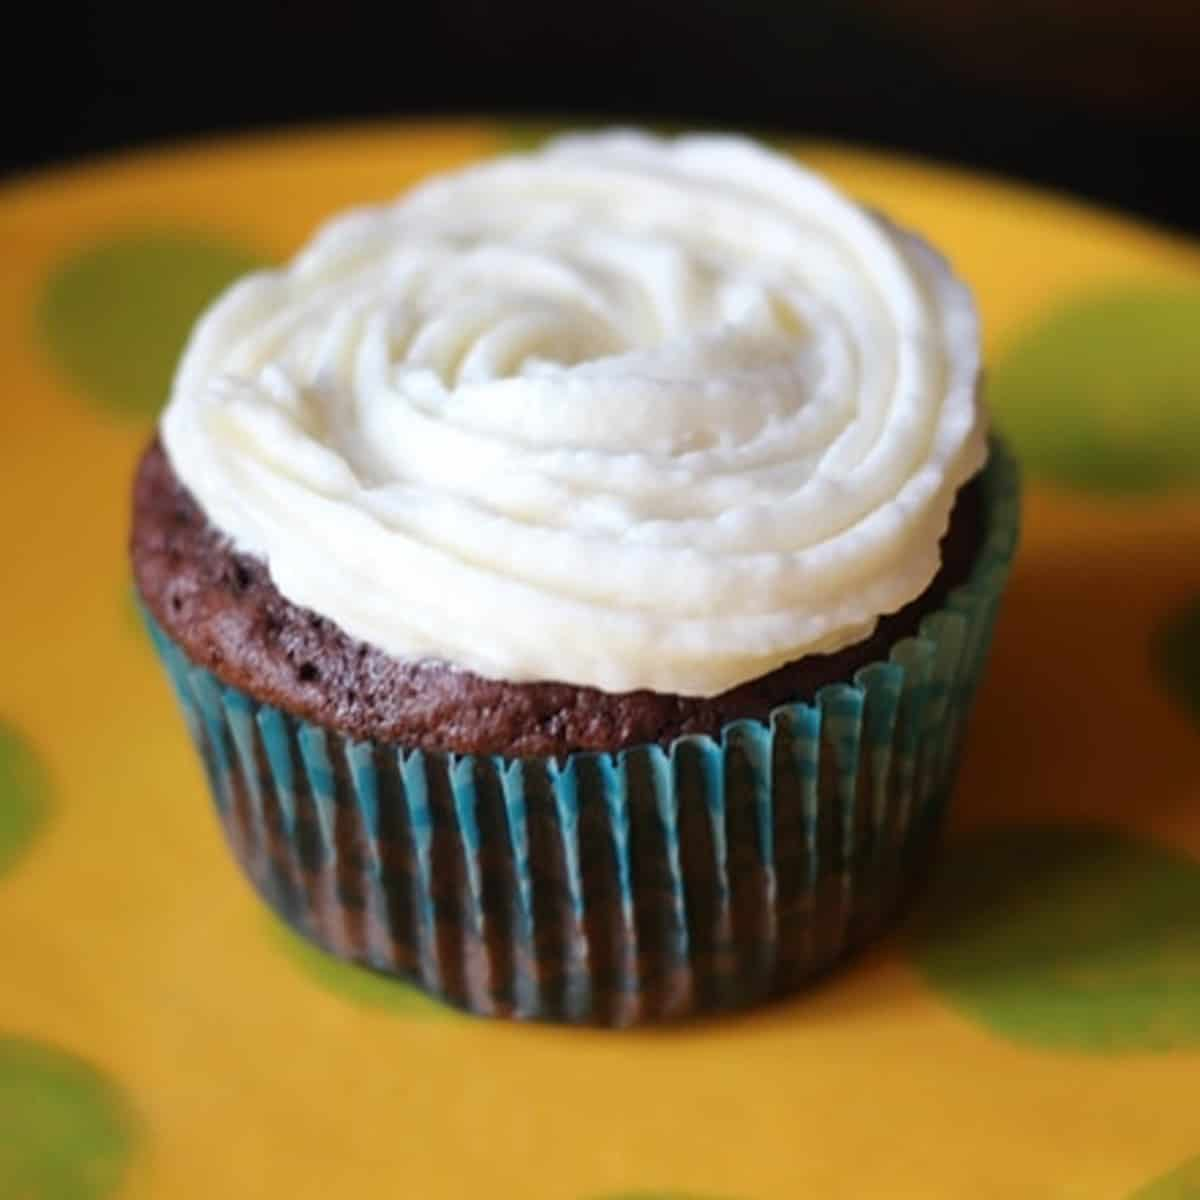 A chocolate cupcake topped with homemade buttercream frosting.